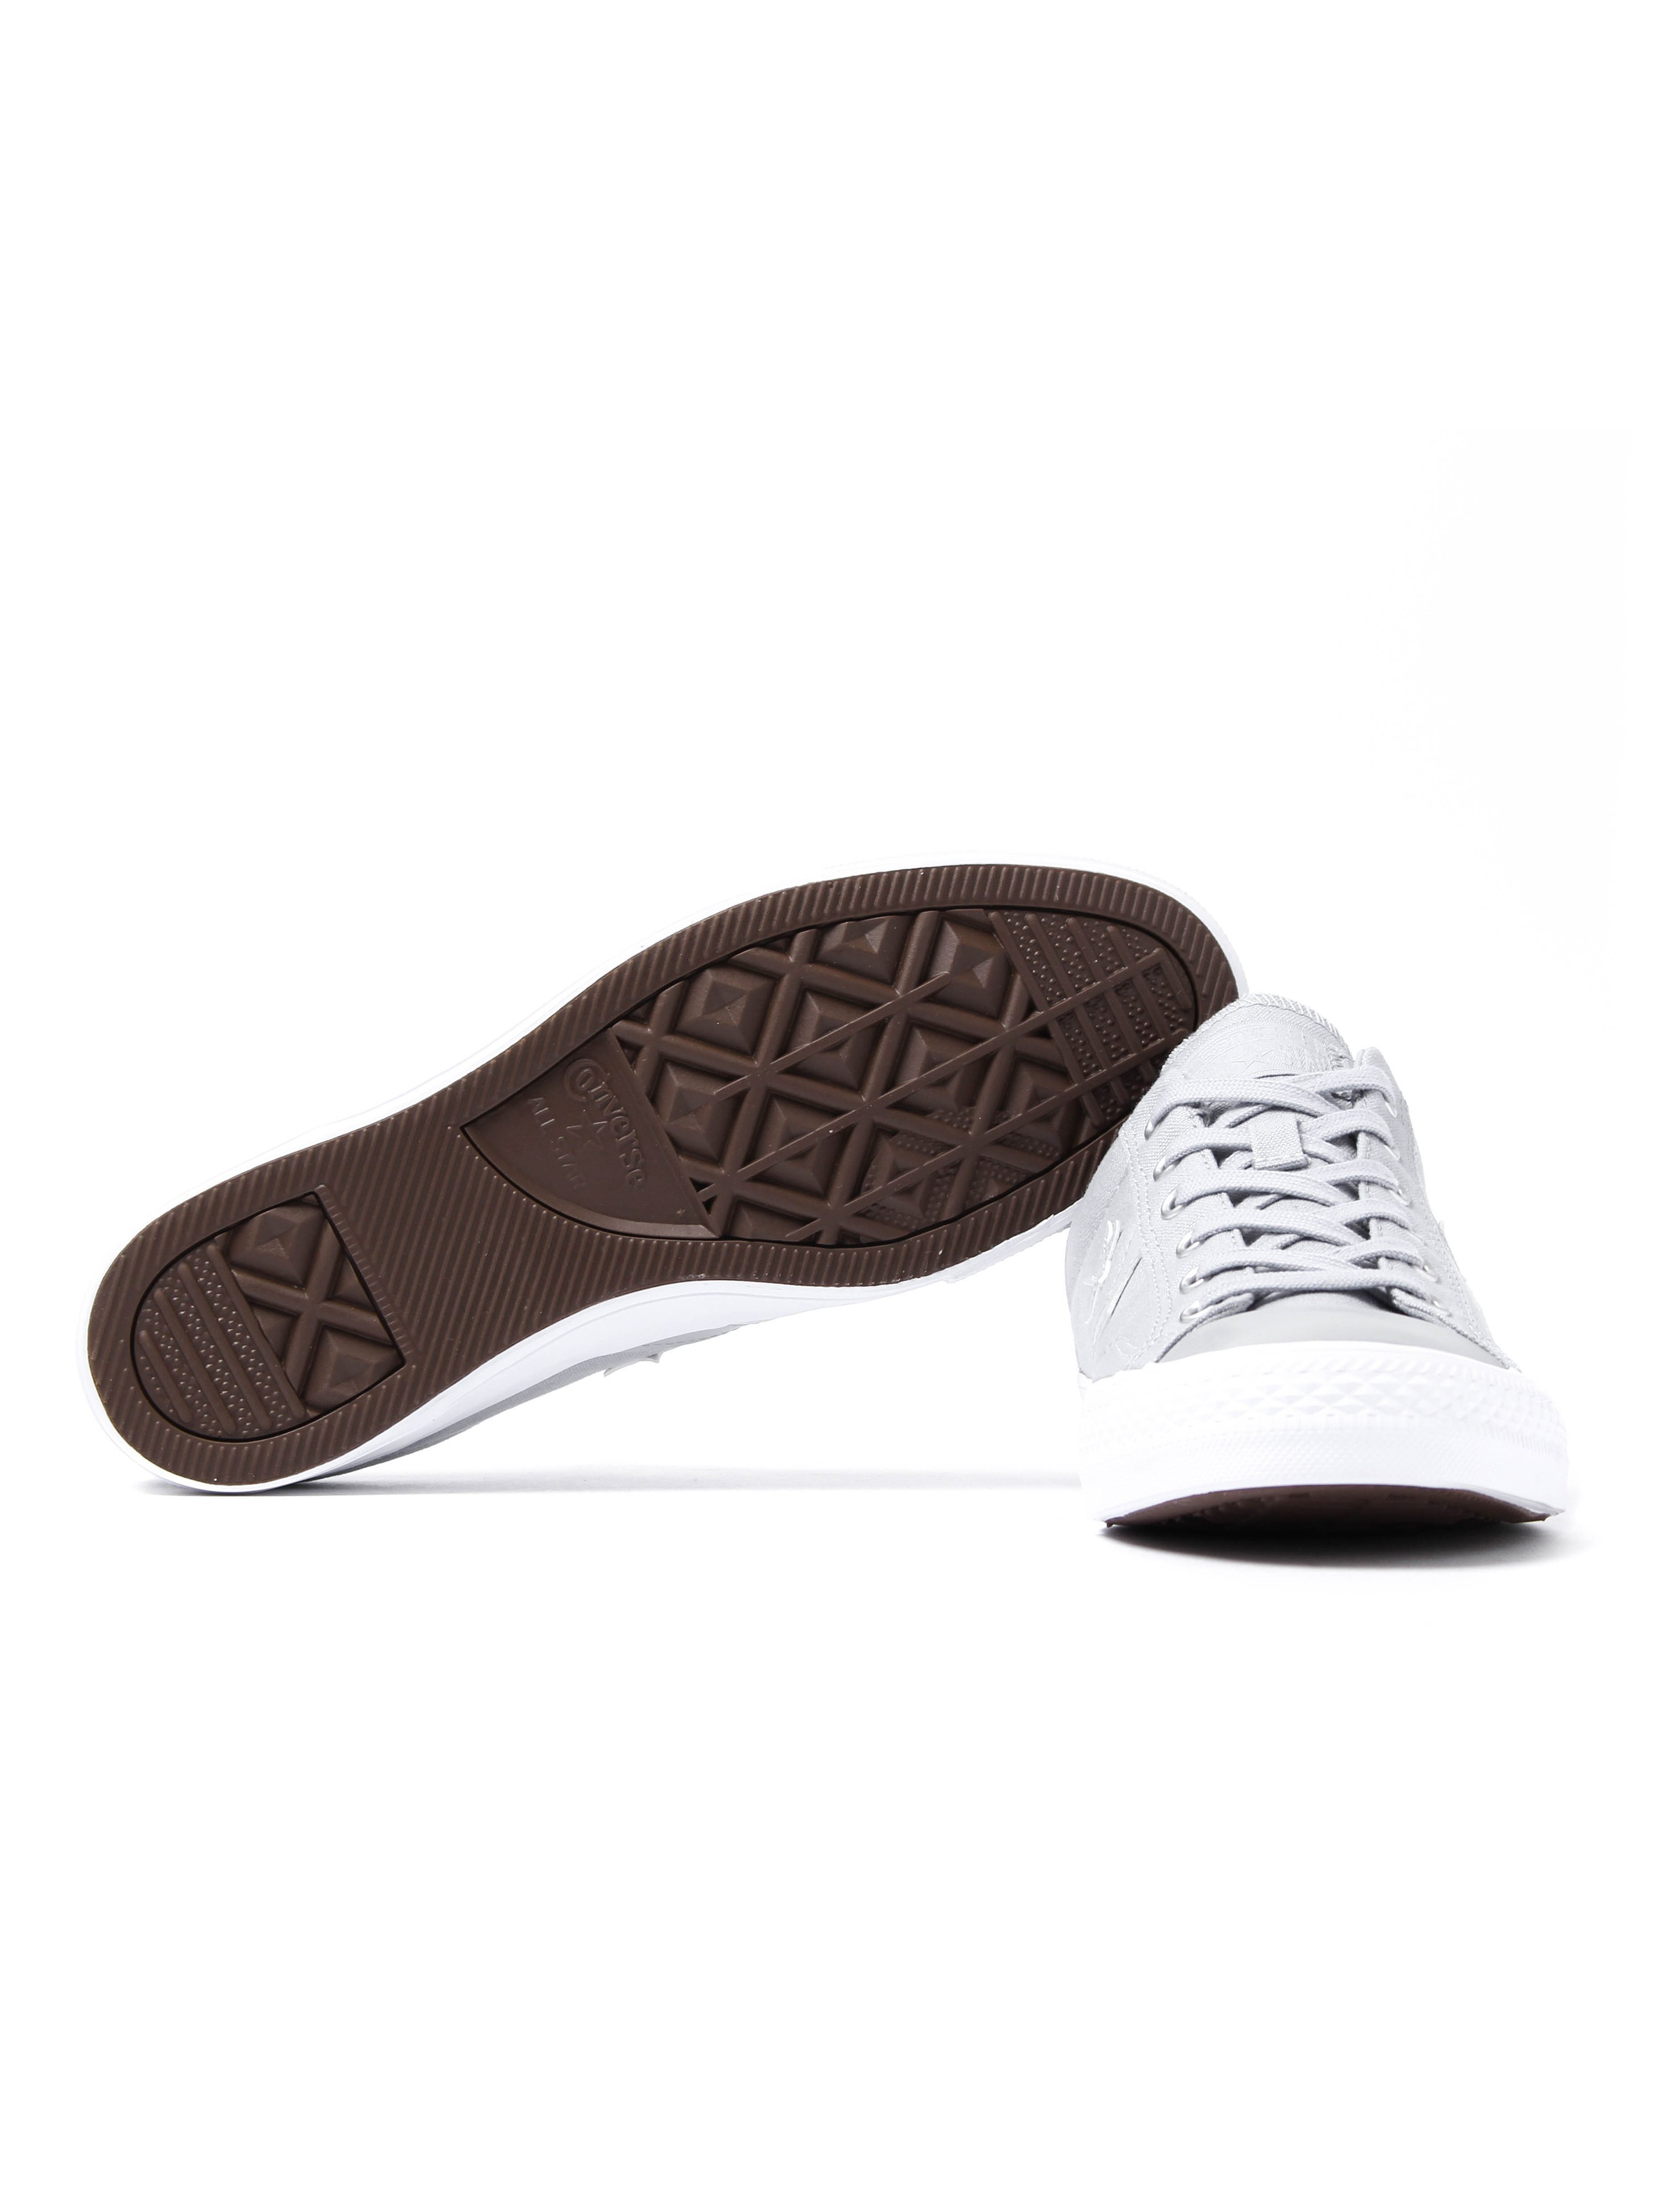 Converse Men's Star Player Trainers - Wolf Grey